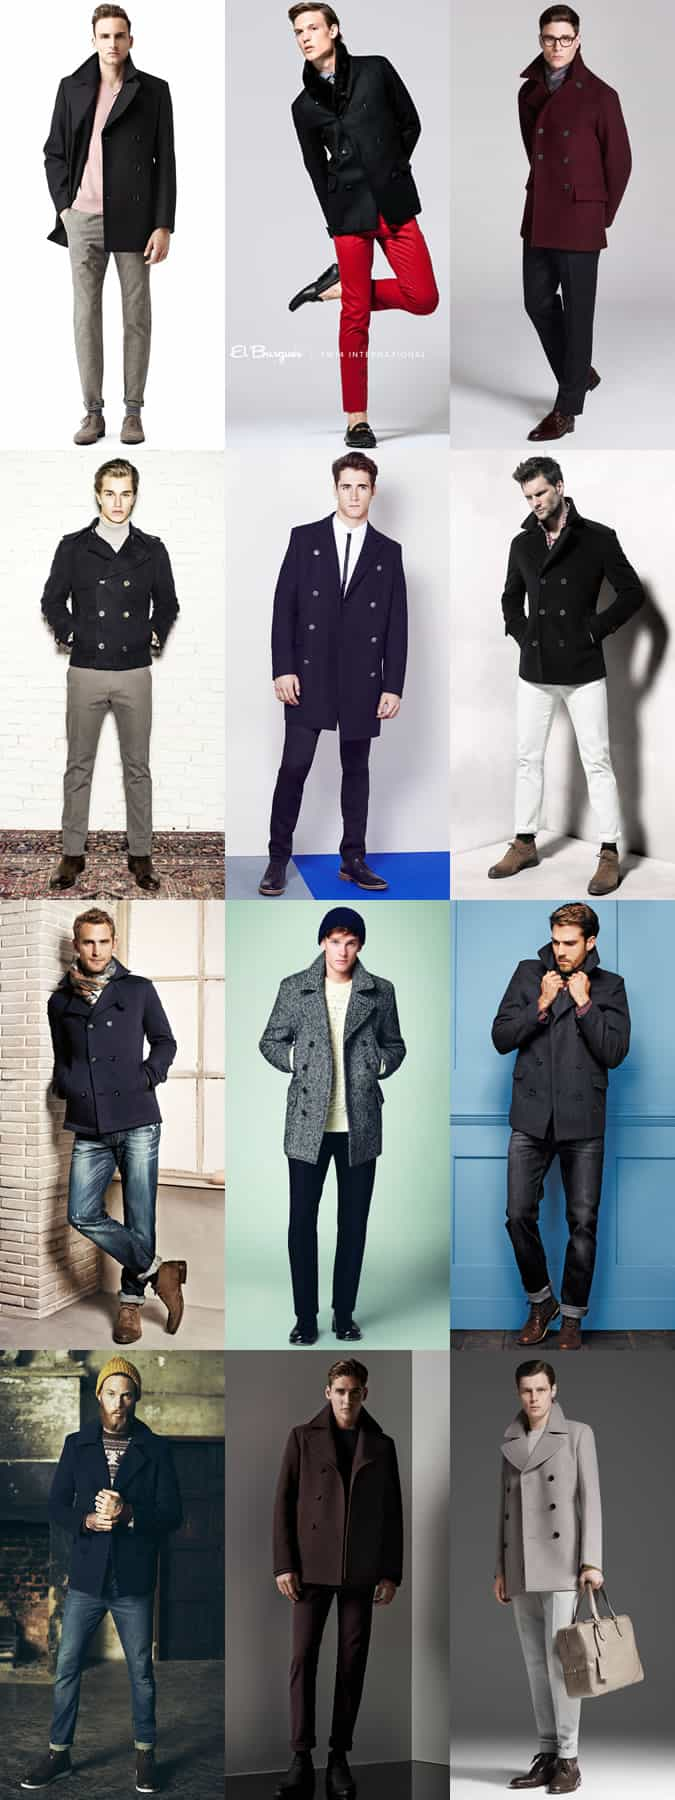 Men's Pea Coat Transitional Outfit Inspiration Lookbook